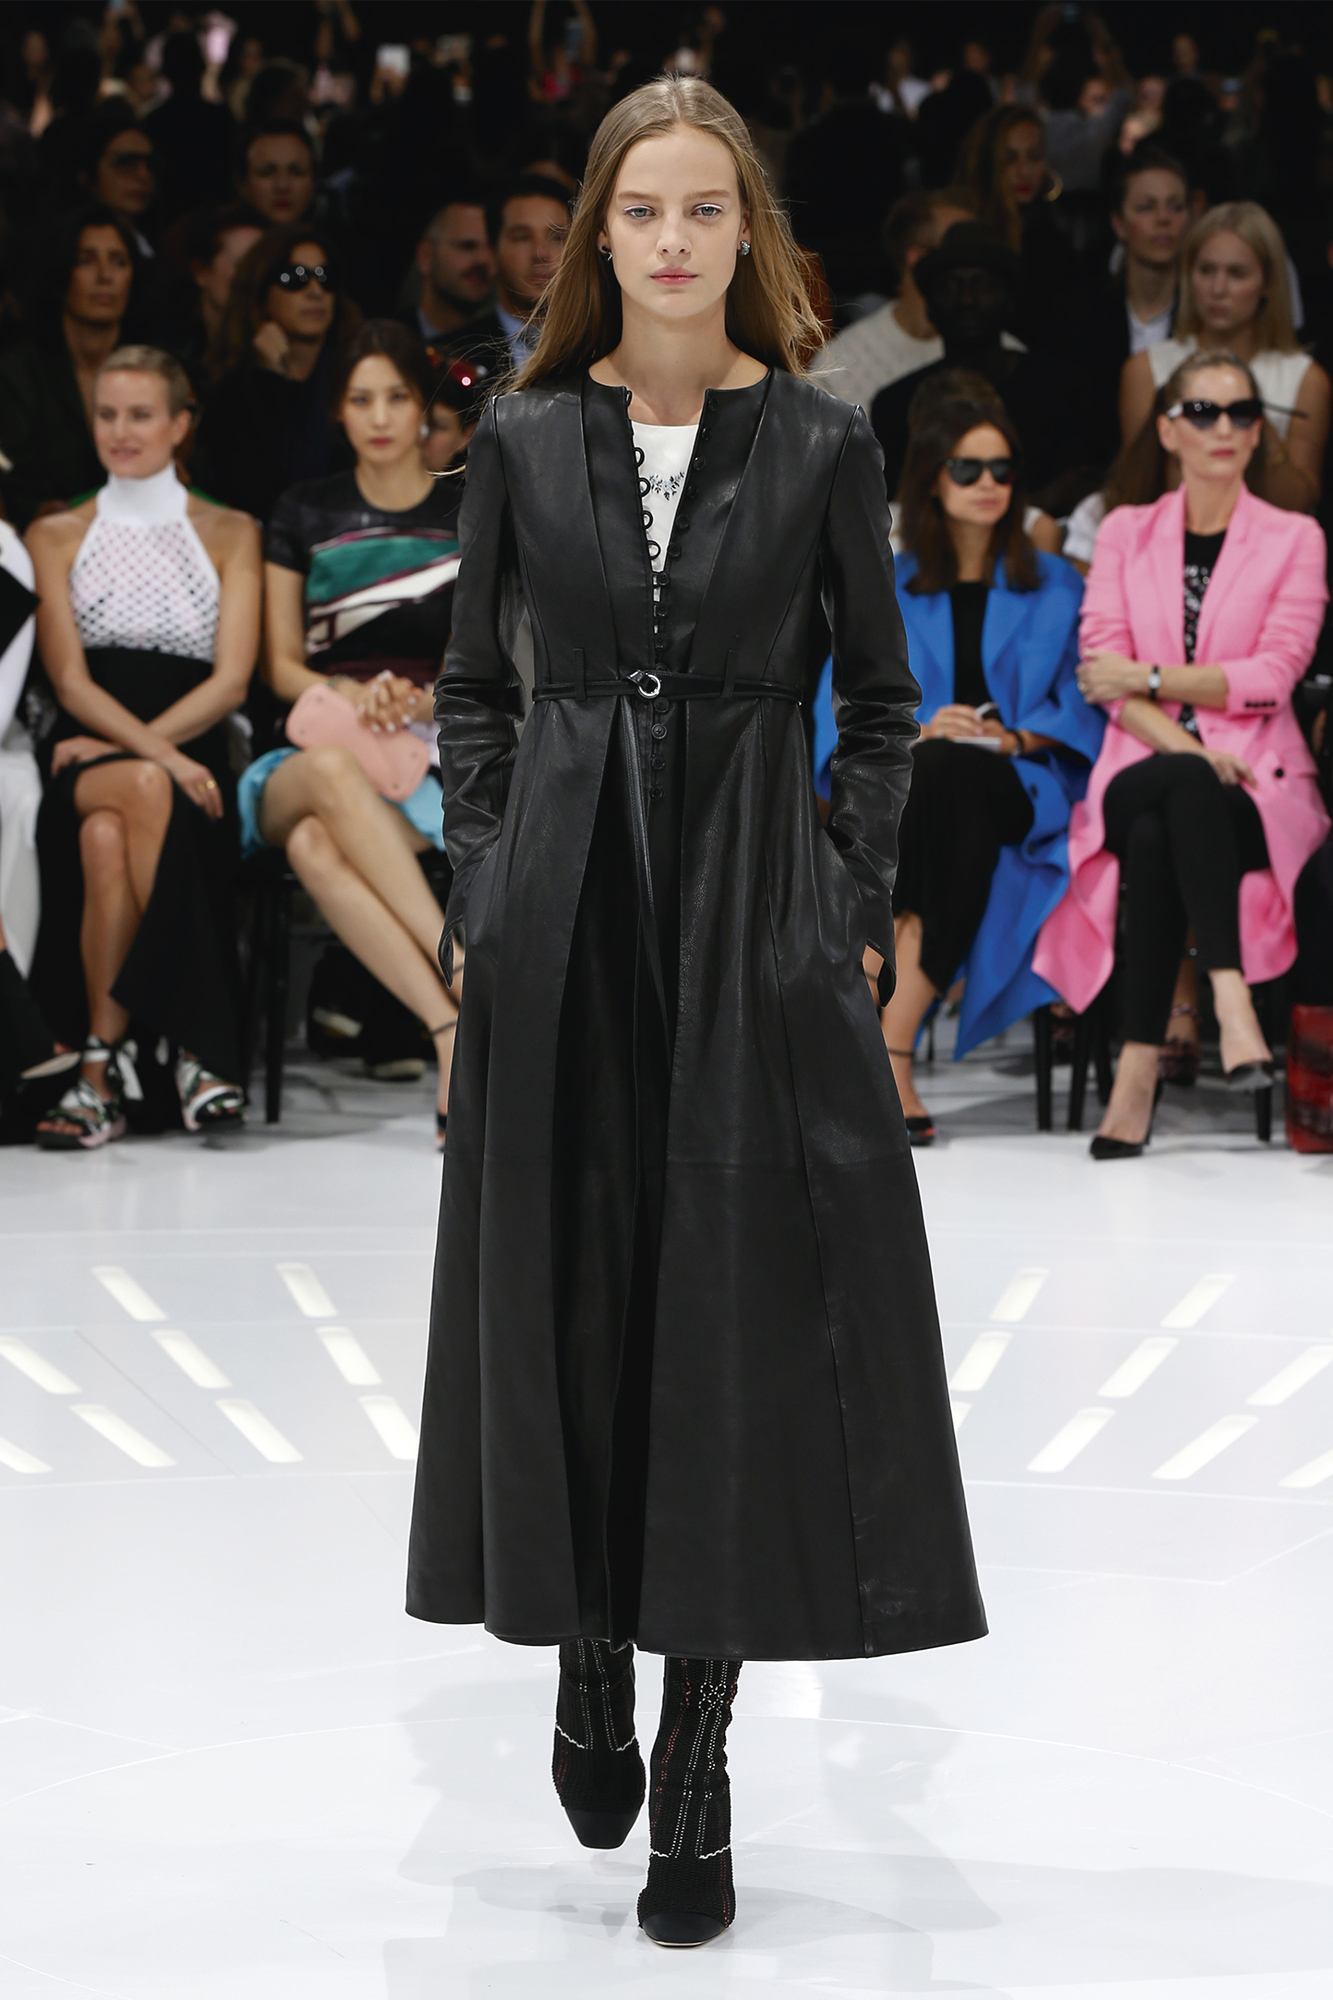 christian-dior-spring-summer-RTW-collection (4)